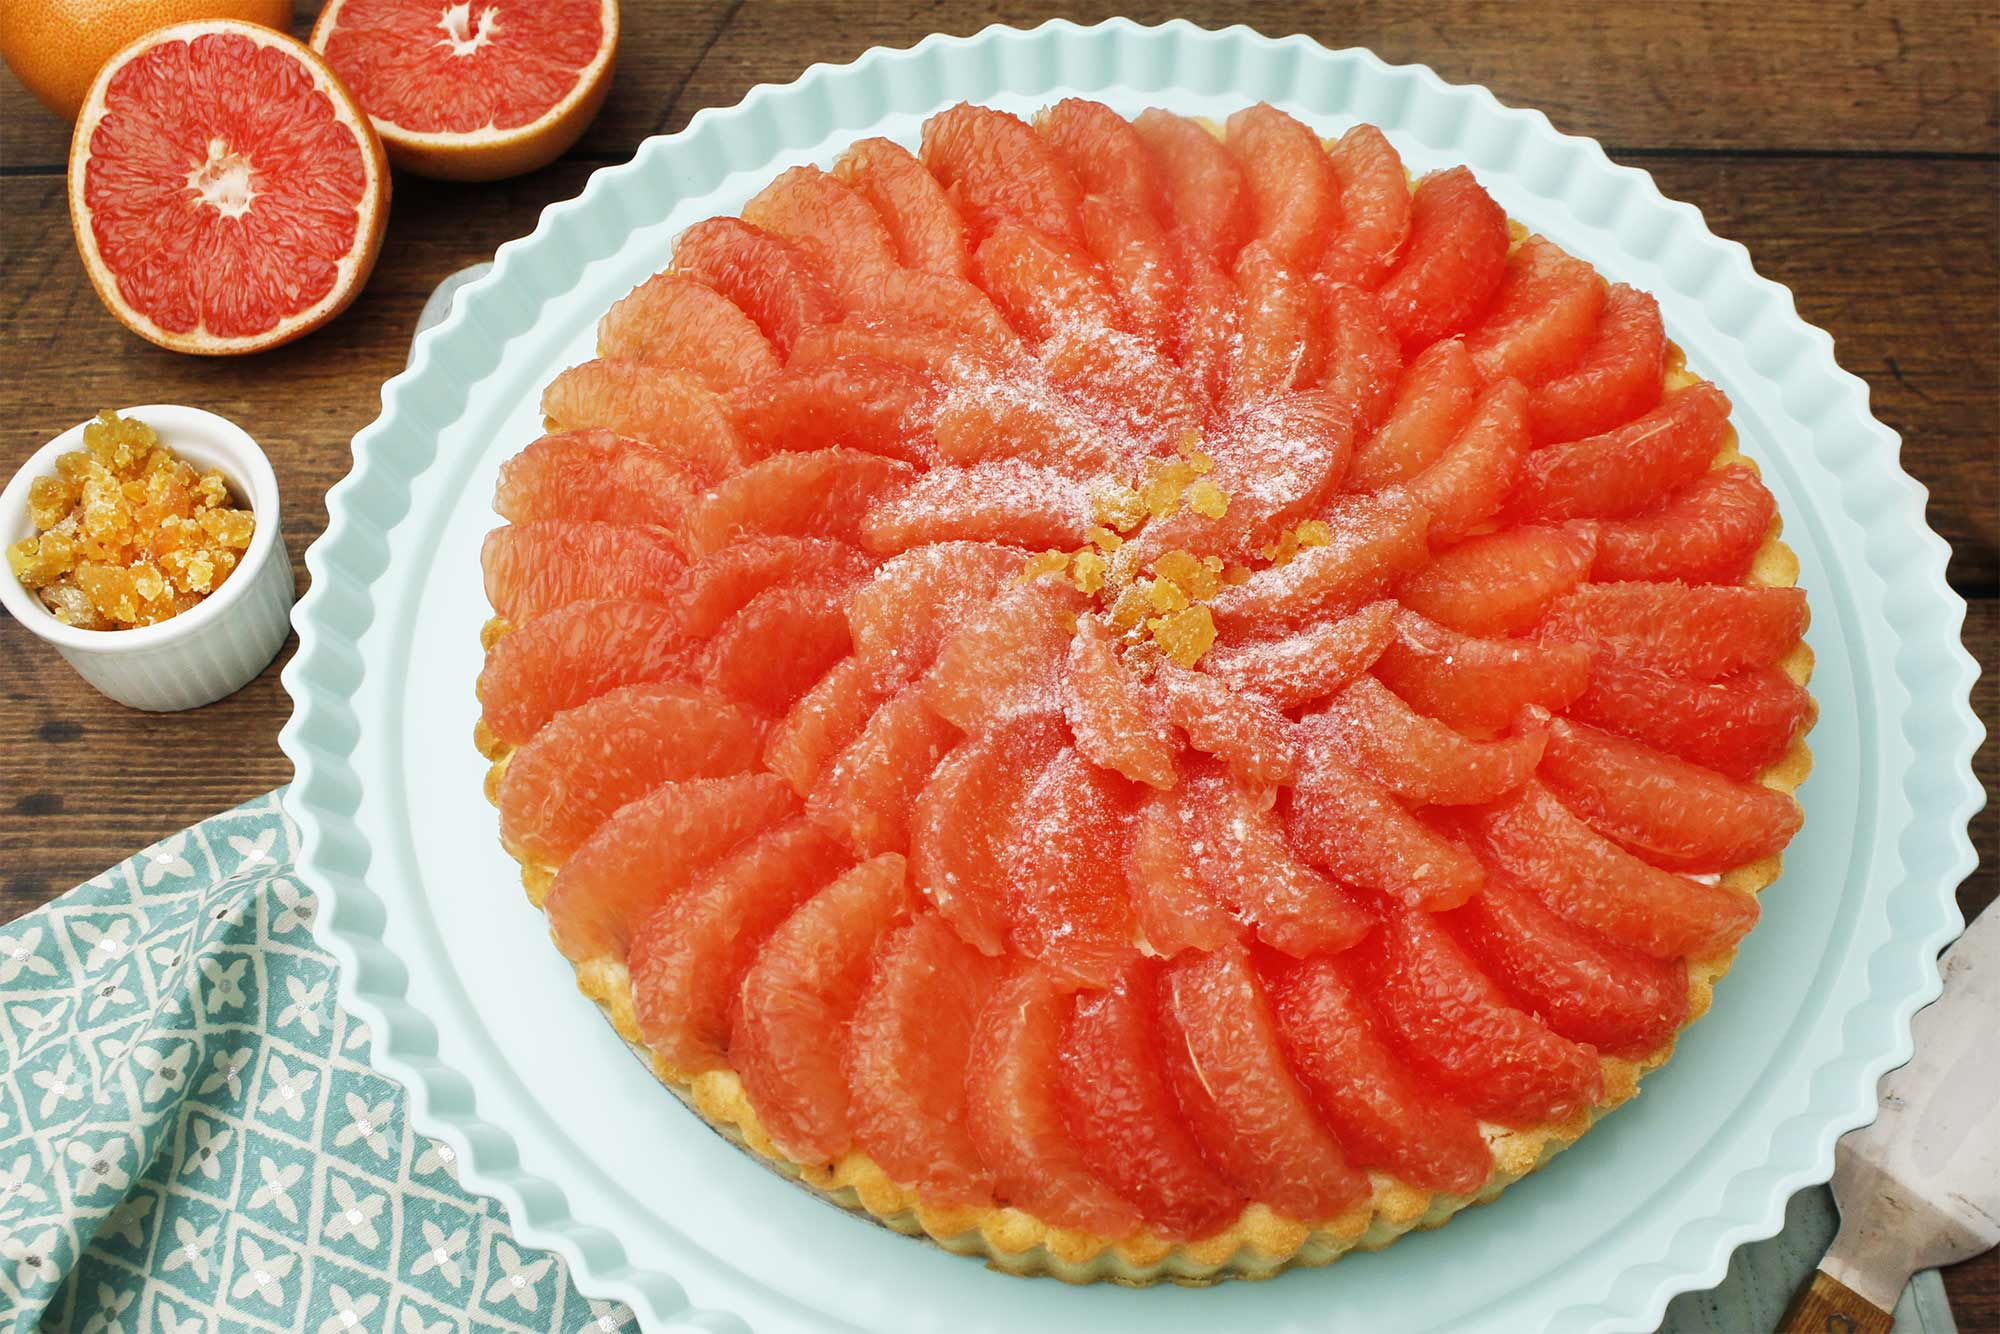 Grapefruit and Ginger Tart